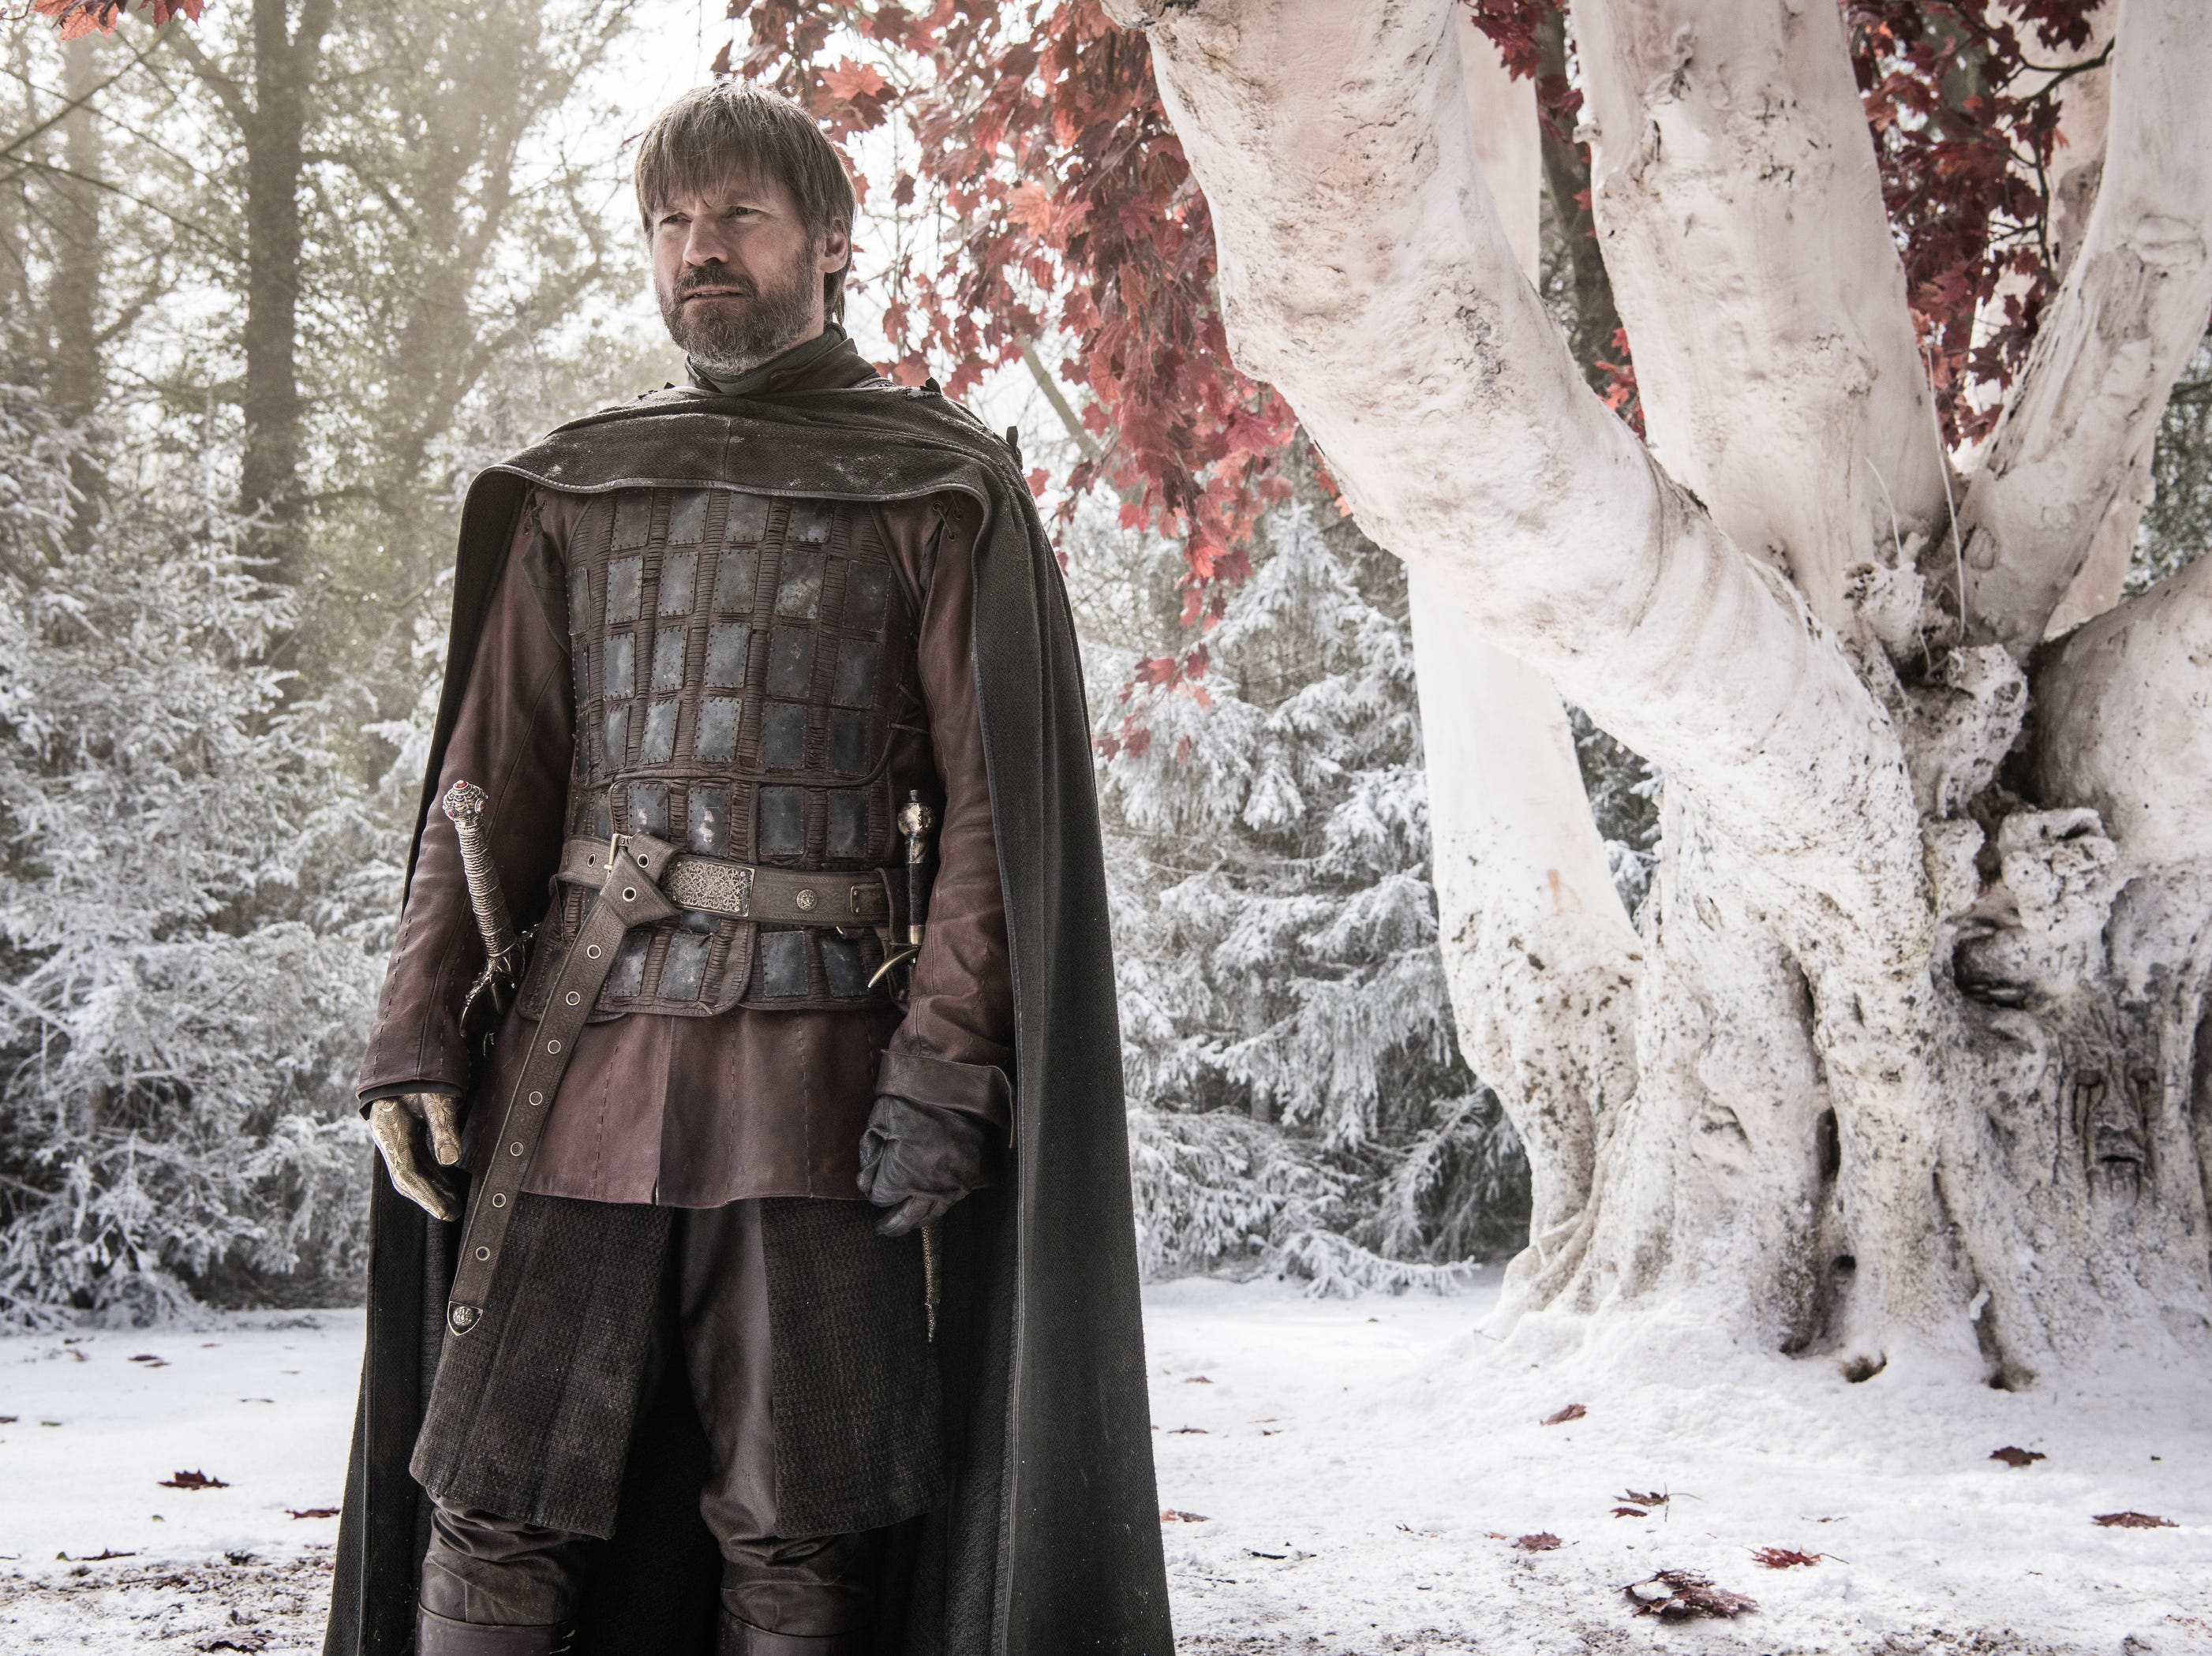 Nikolaj Coster-Waldau as Jaime Lannister on 'Game of Thrones.'